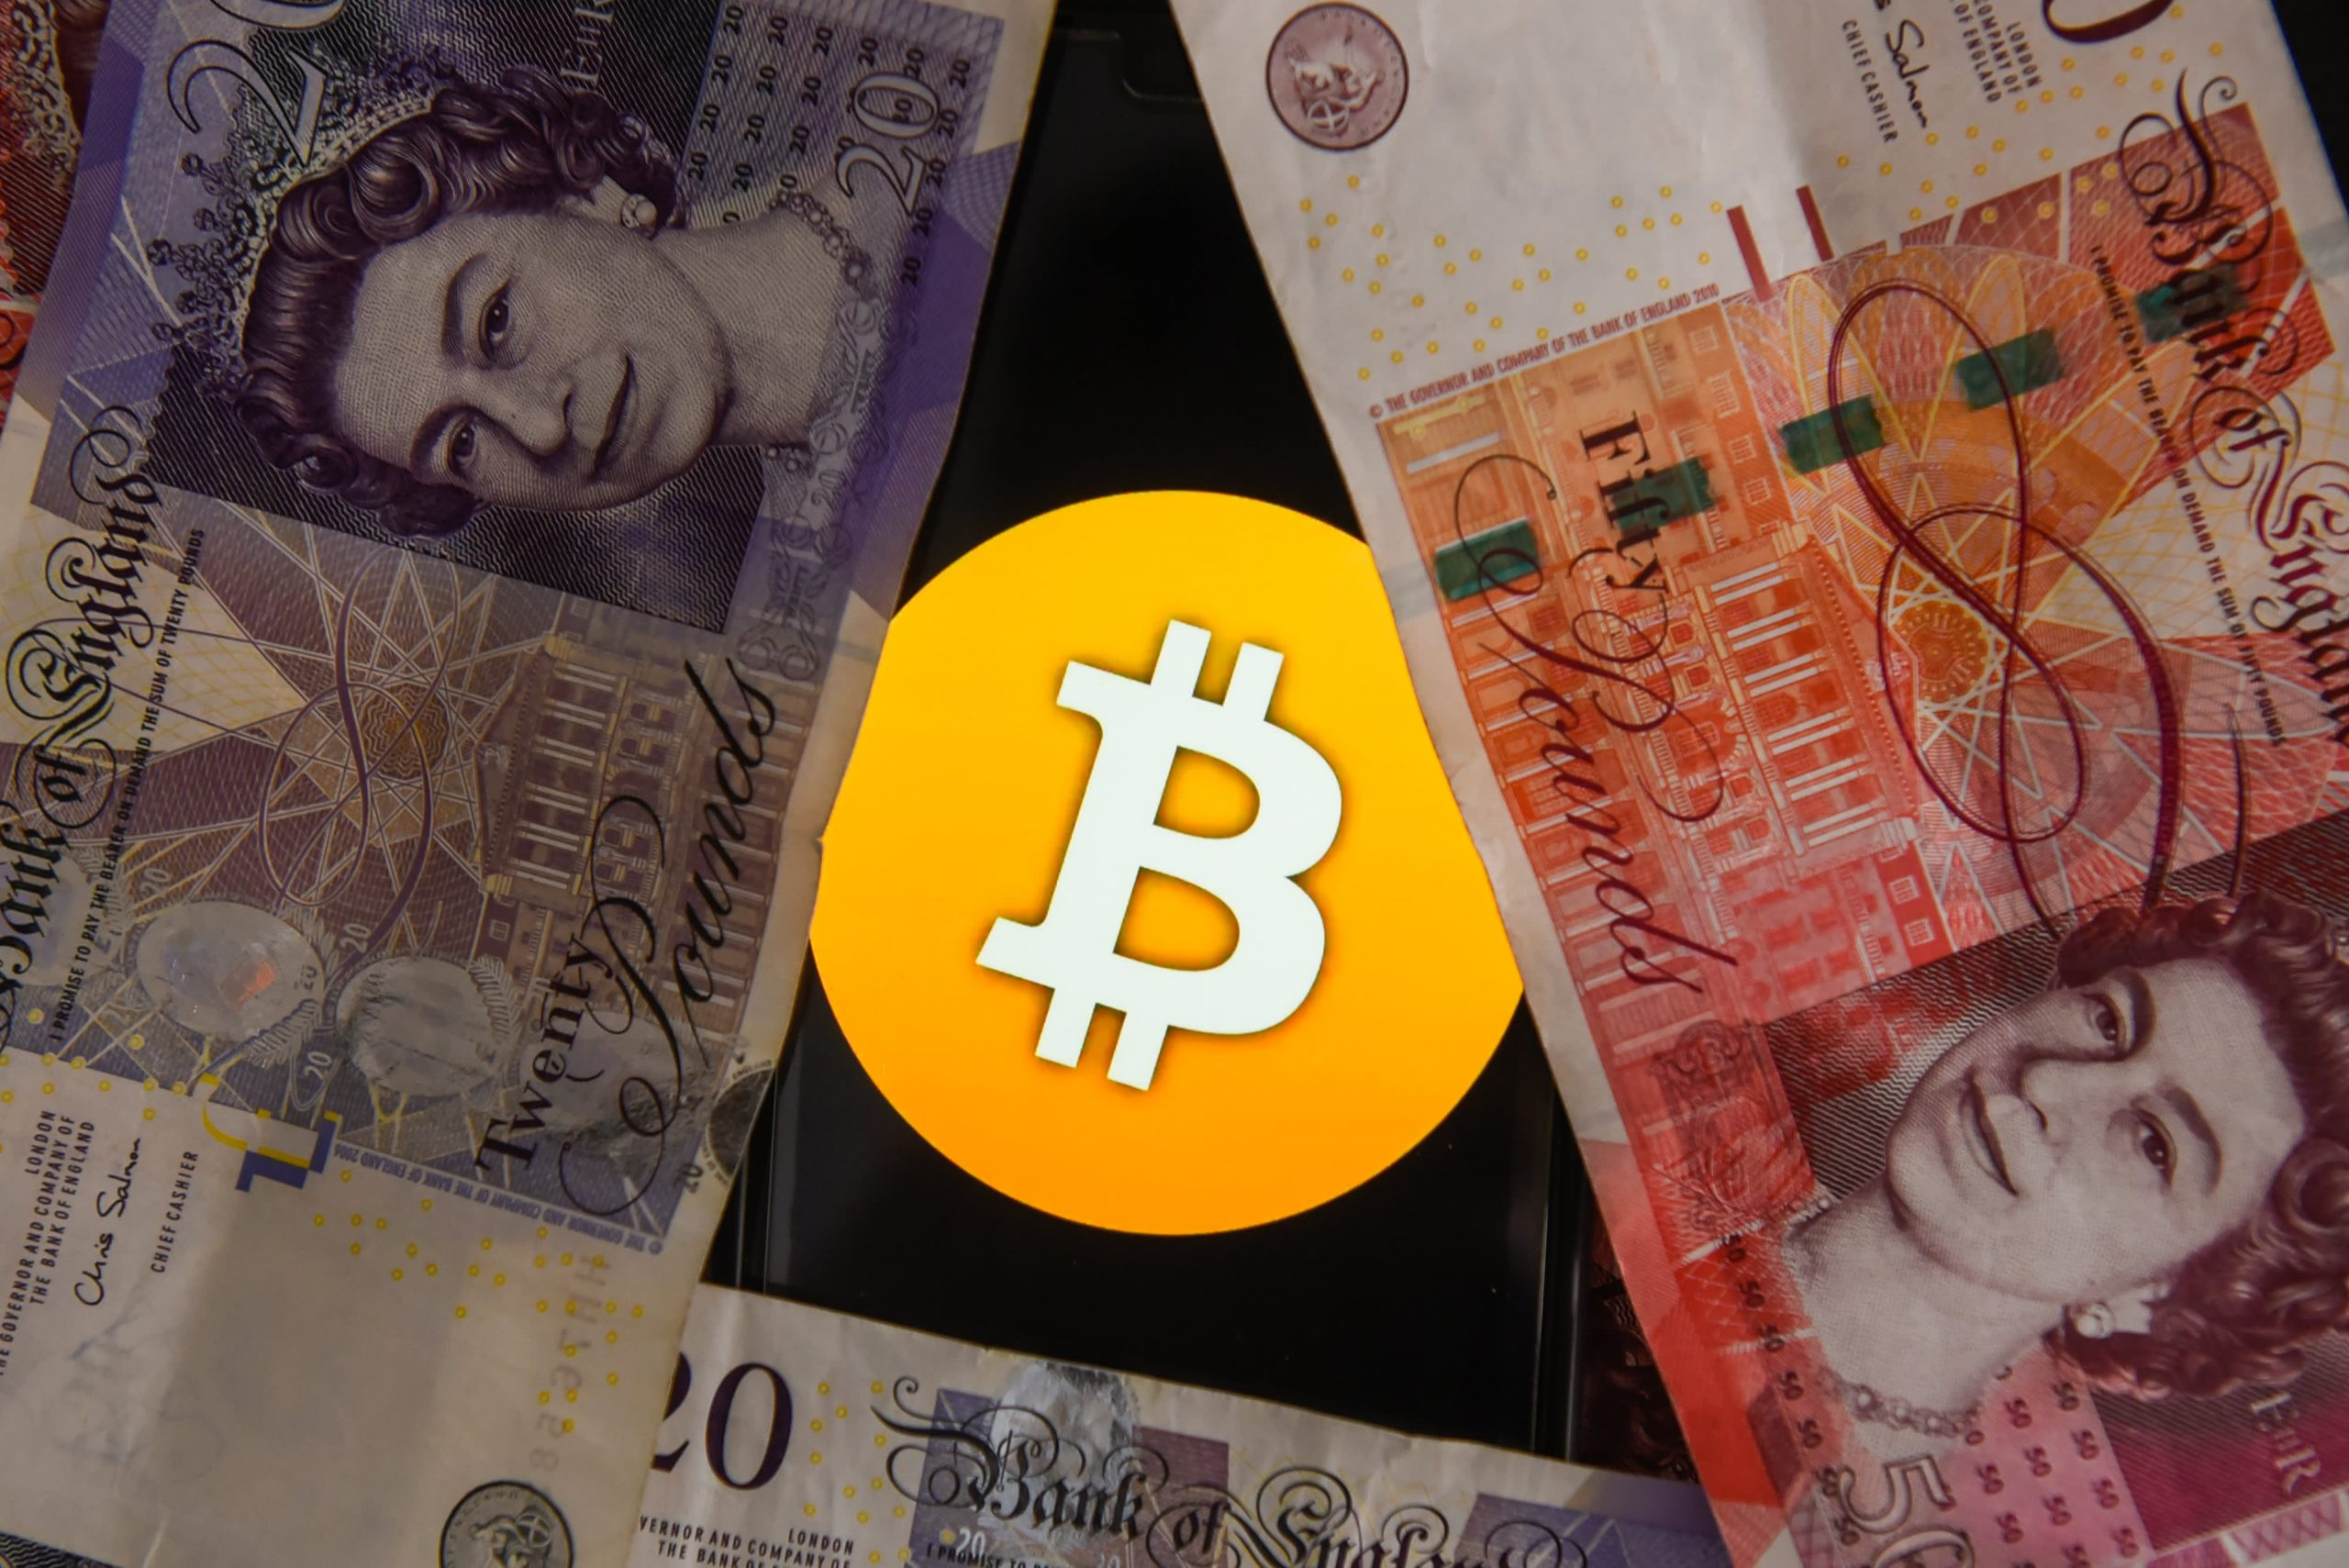 UK to explore issuing its own digital currency amid bitcoin boom